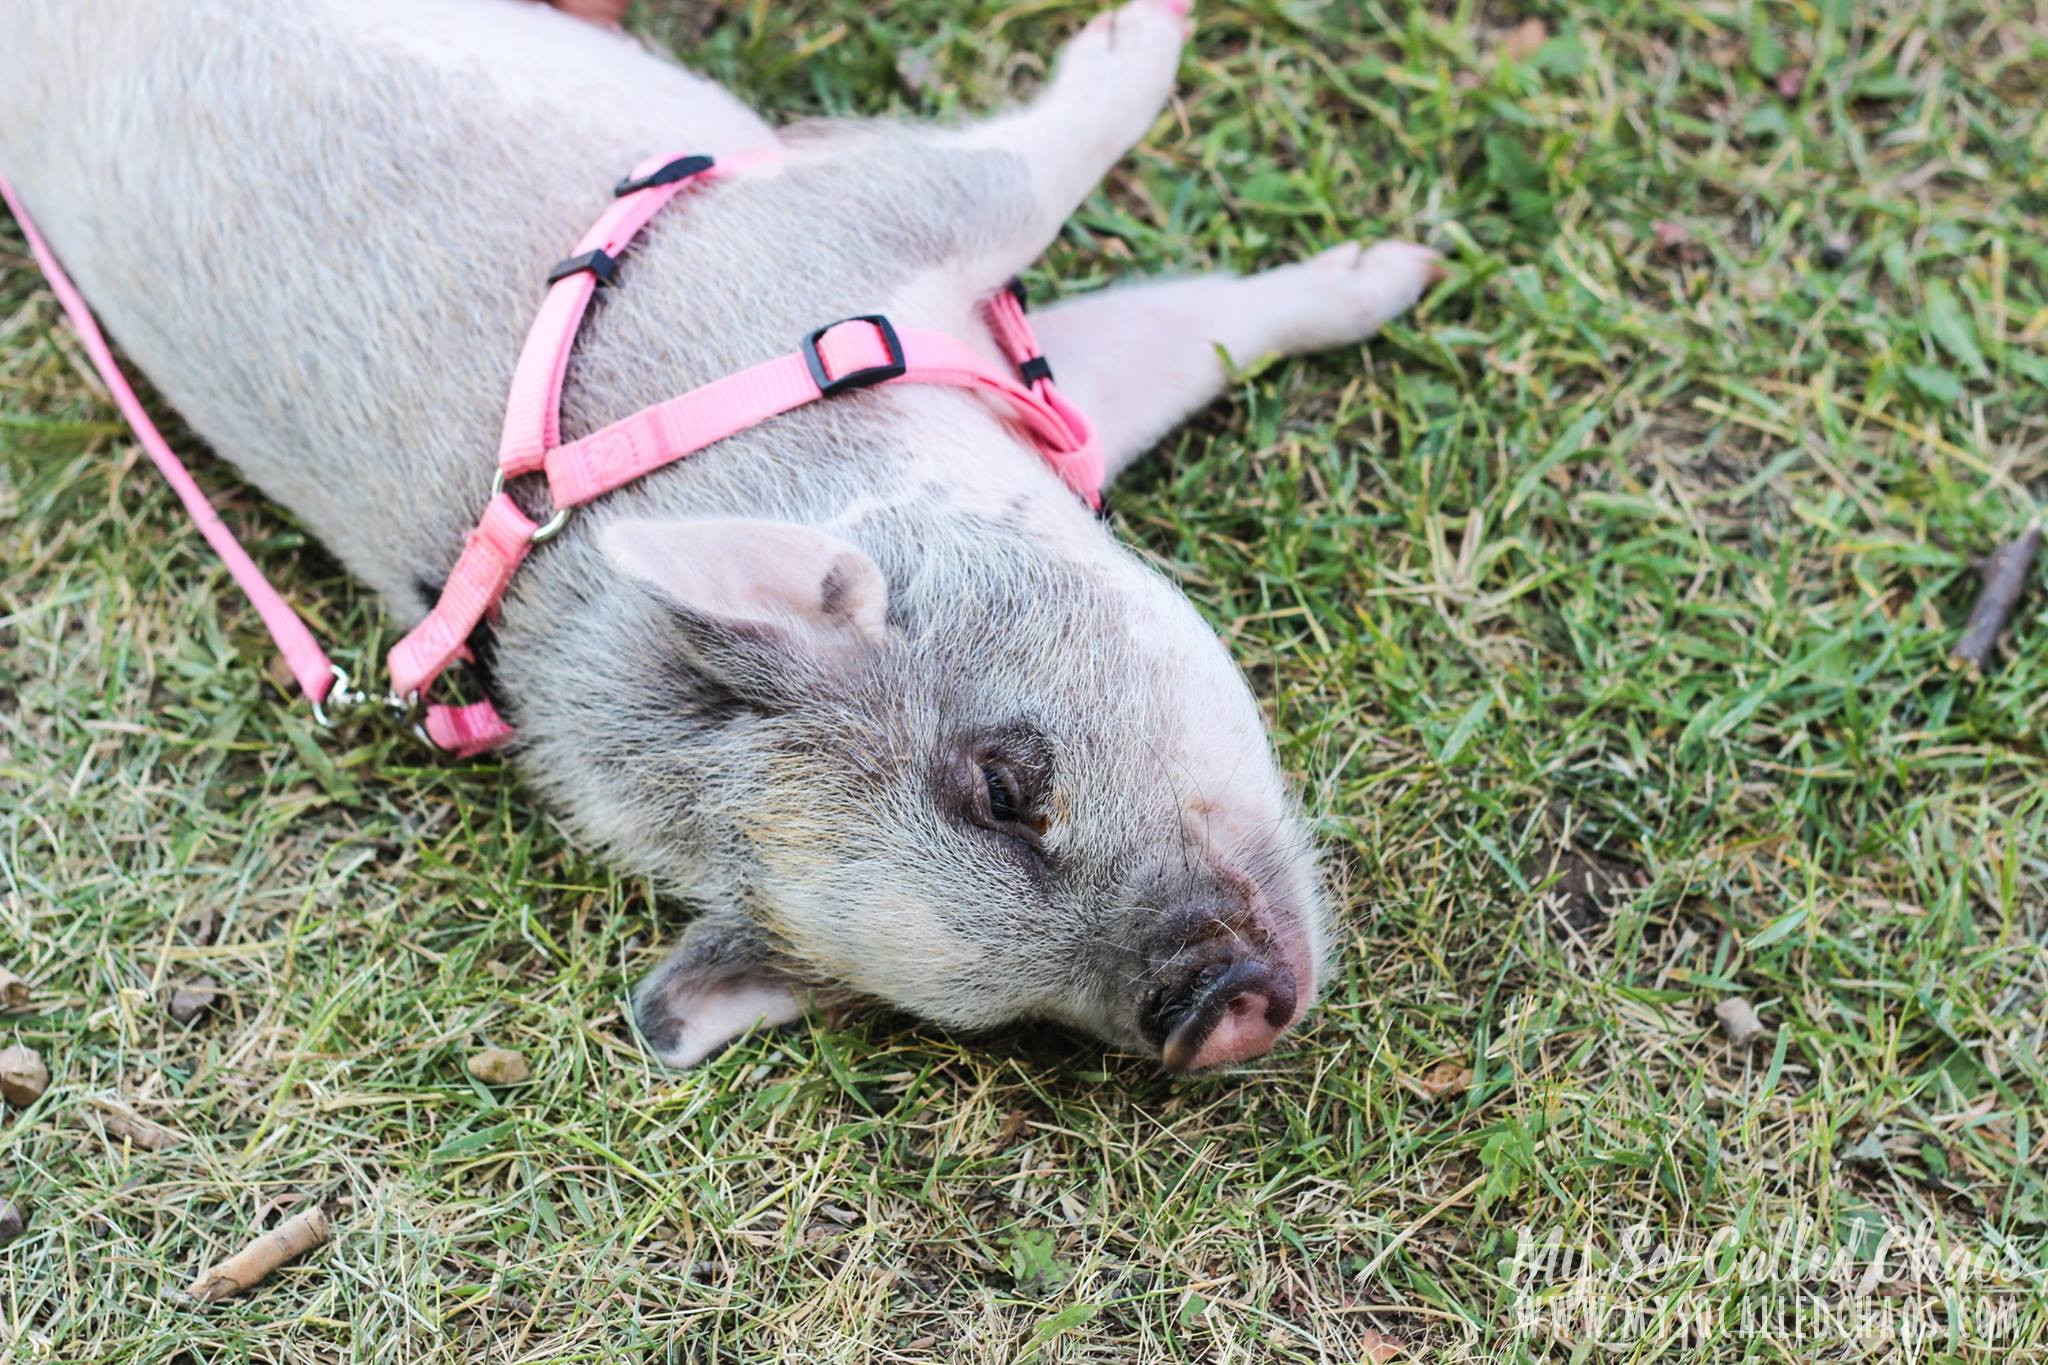 Pig at Fort Bridger Rendezvous